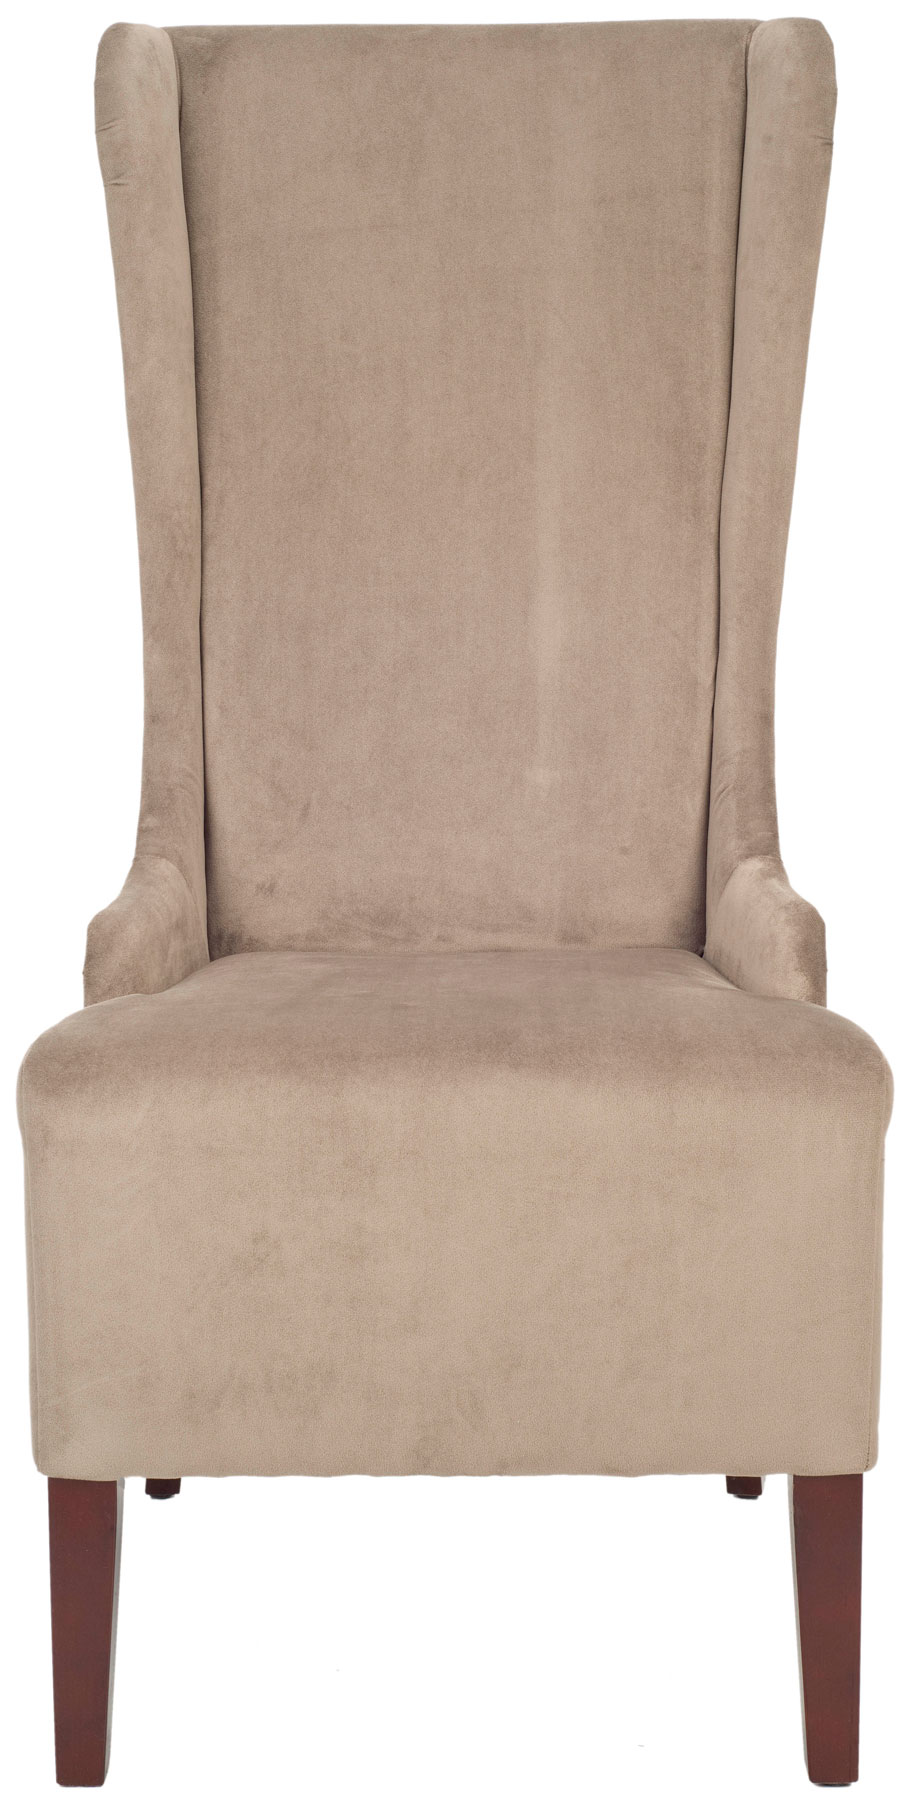 Mcr4501b Dining Chairs Furniture By Safavieh